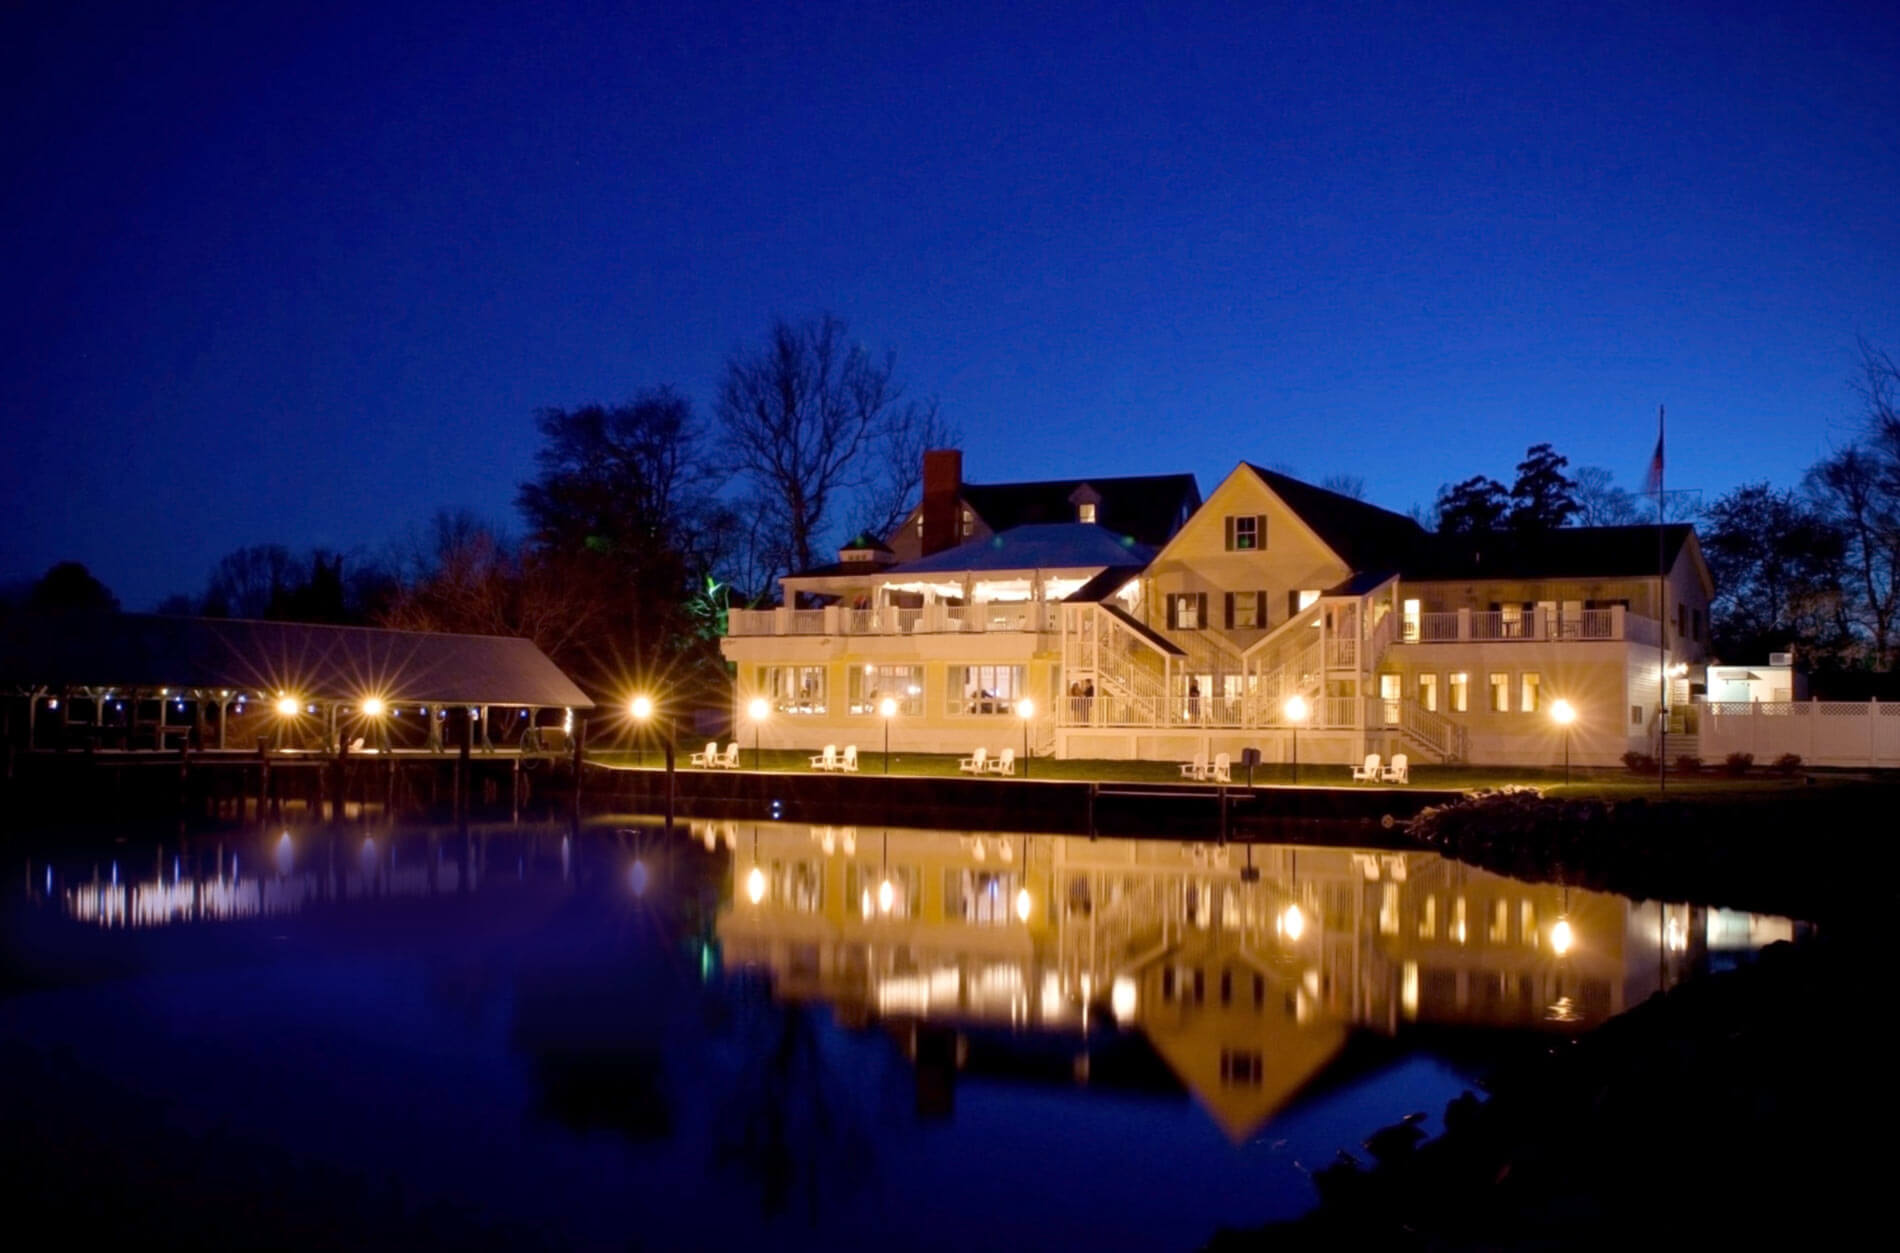 The Oaks Waterfront Inn & Events Maryland Wedding Venues wide angle view of waterfront property